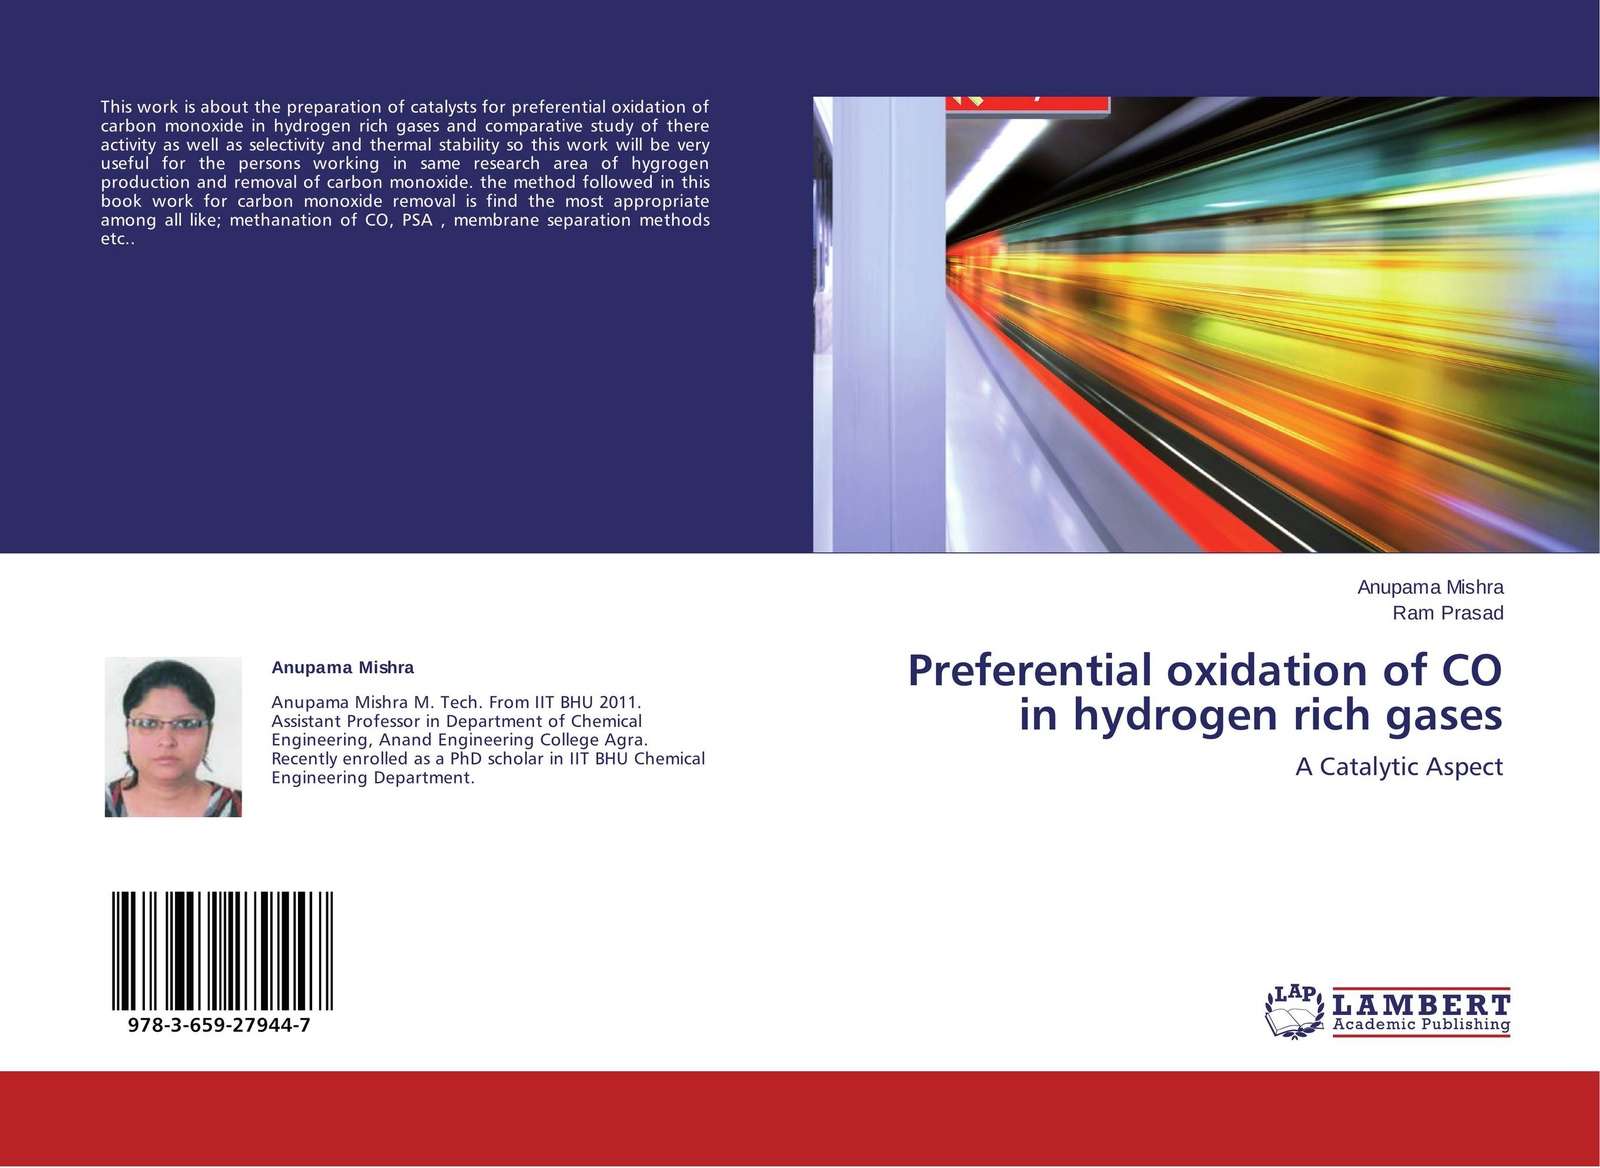 Anupama Mishra and Ram Prasad Preferential oxidation of CO in hydrogen rich gases oxidation of sugars